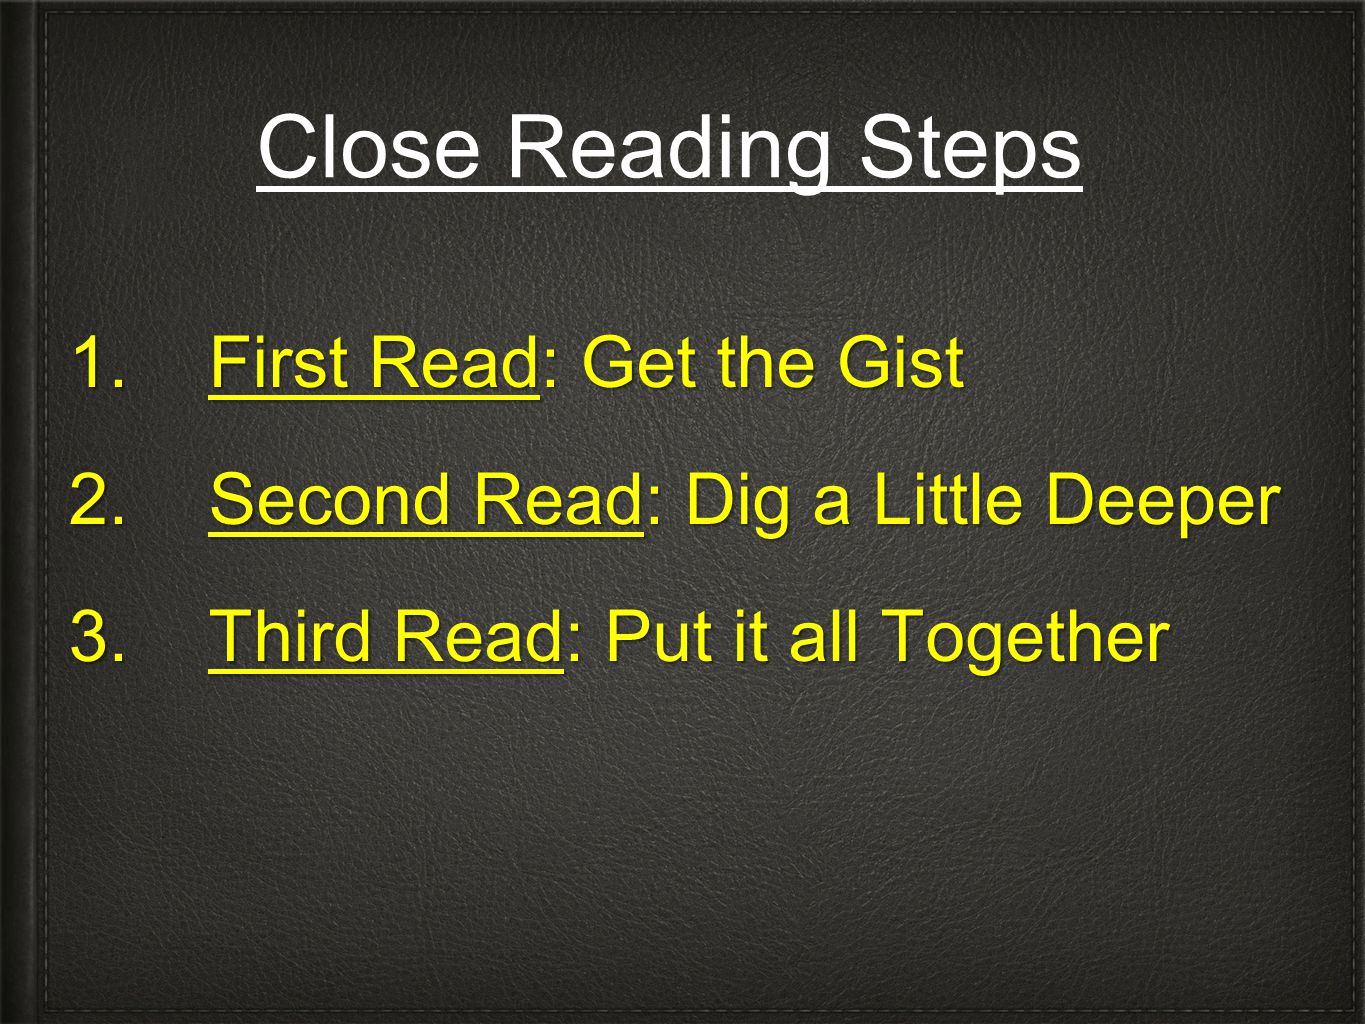 Close Reading Steps 1. First Read: Get the Gist 2. Second Read: Dig a Little Deeper 3. Third Read: Put it all Together